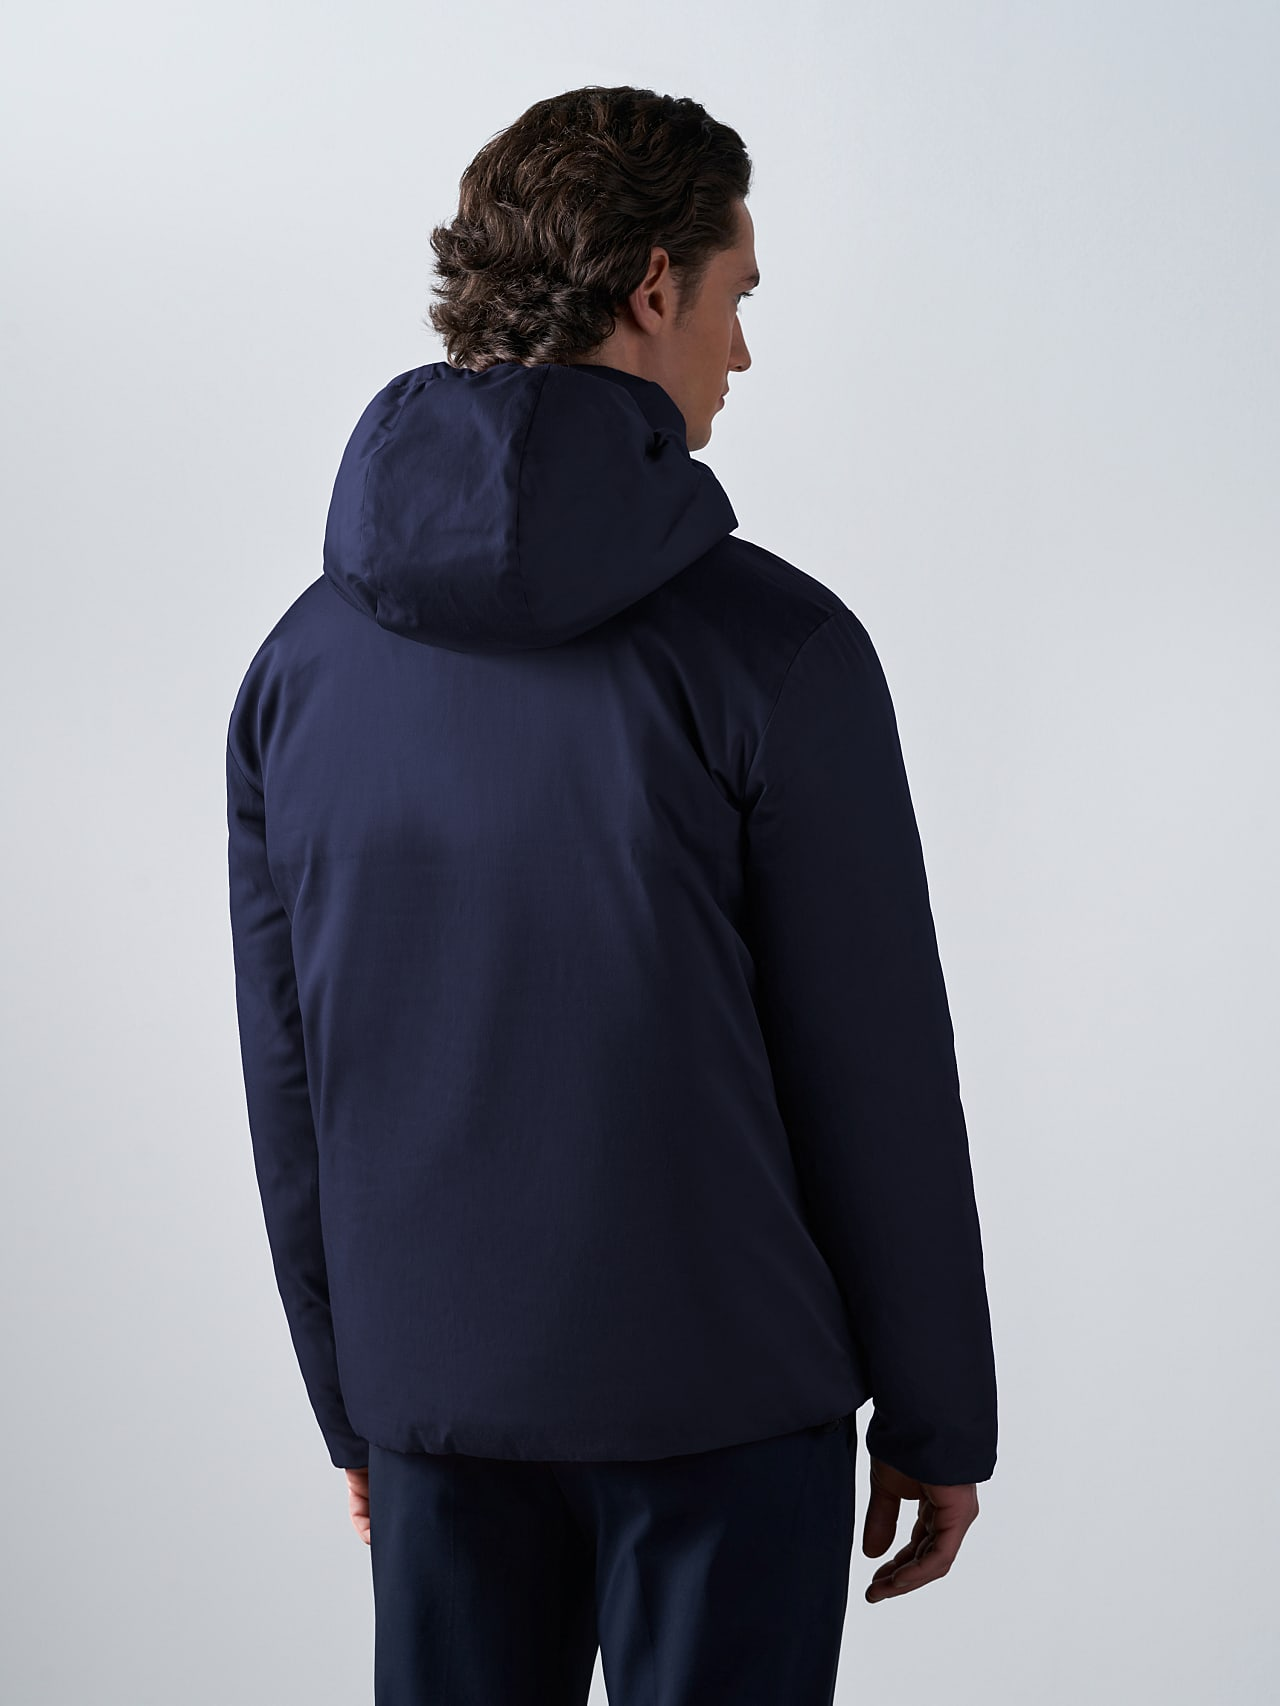 OTACE V1.Y5.02 Reversible 2-in-1 Puffer Jacket navy Right Alpha Tauri